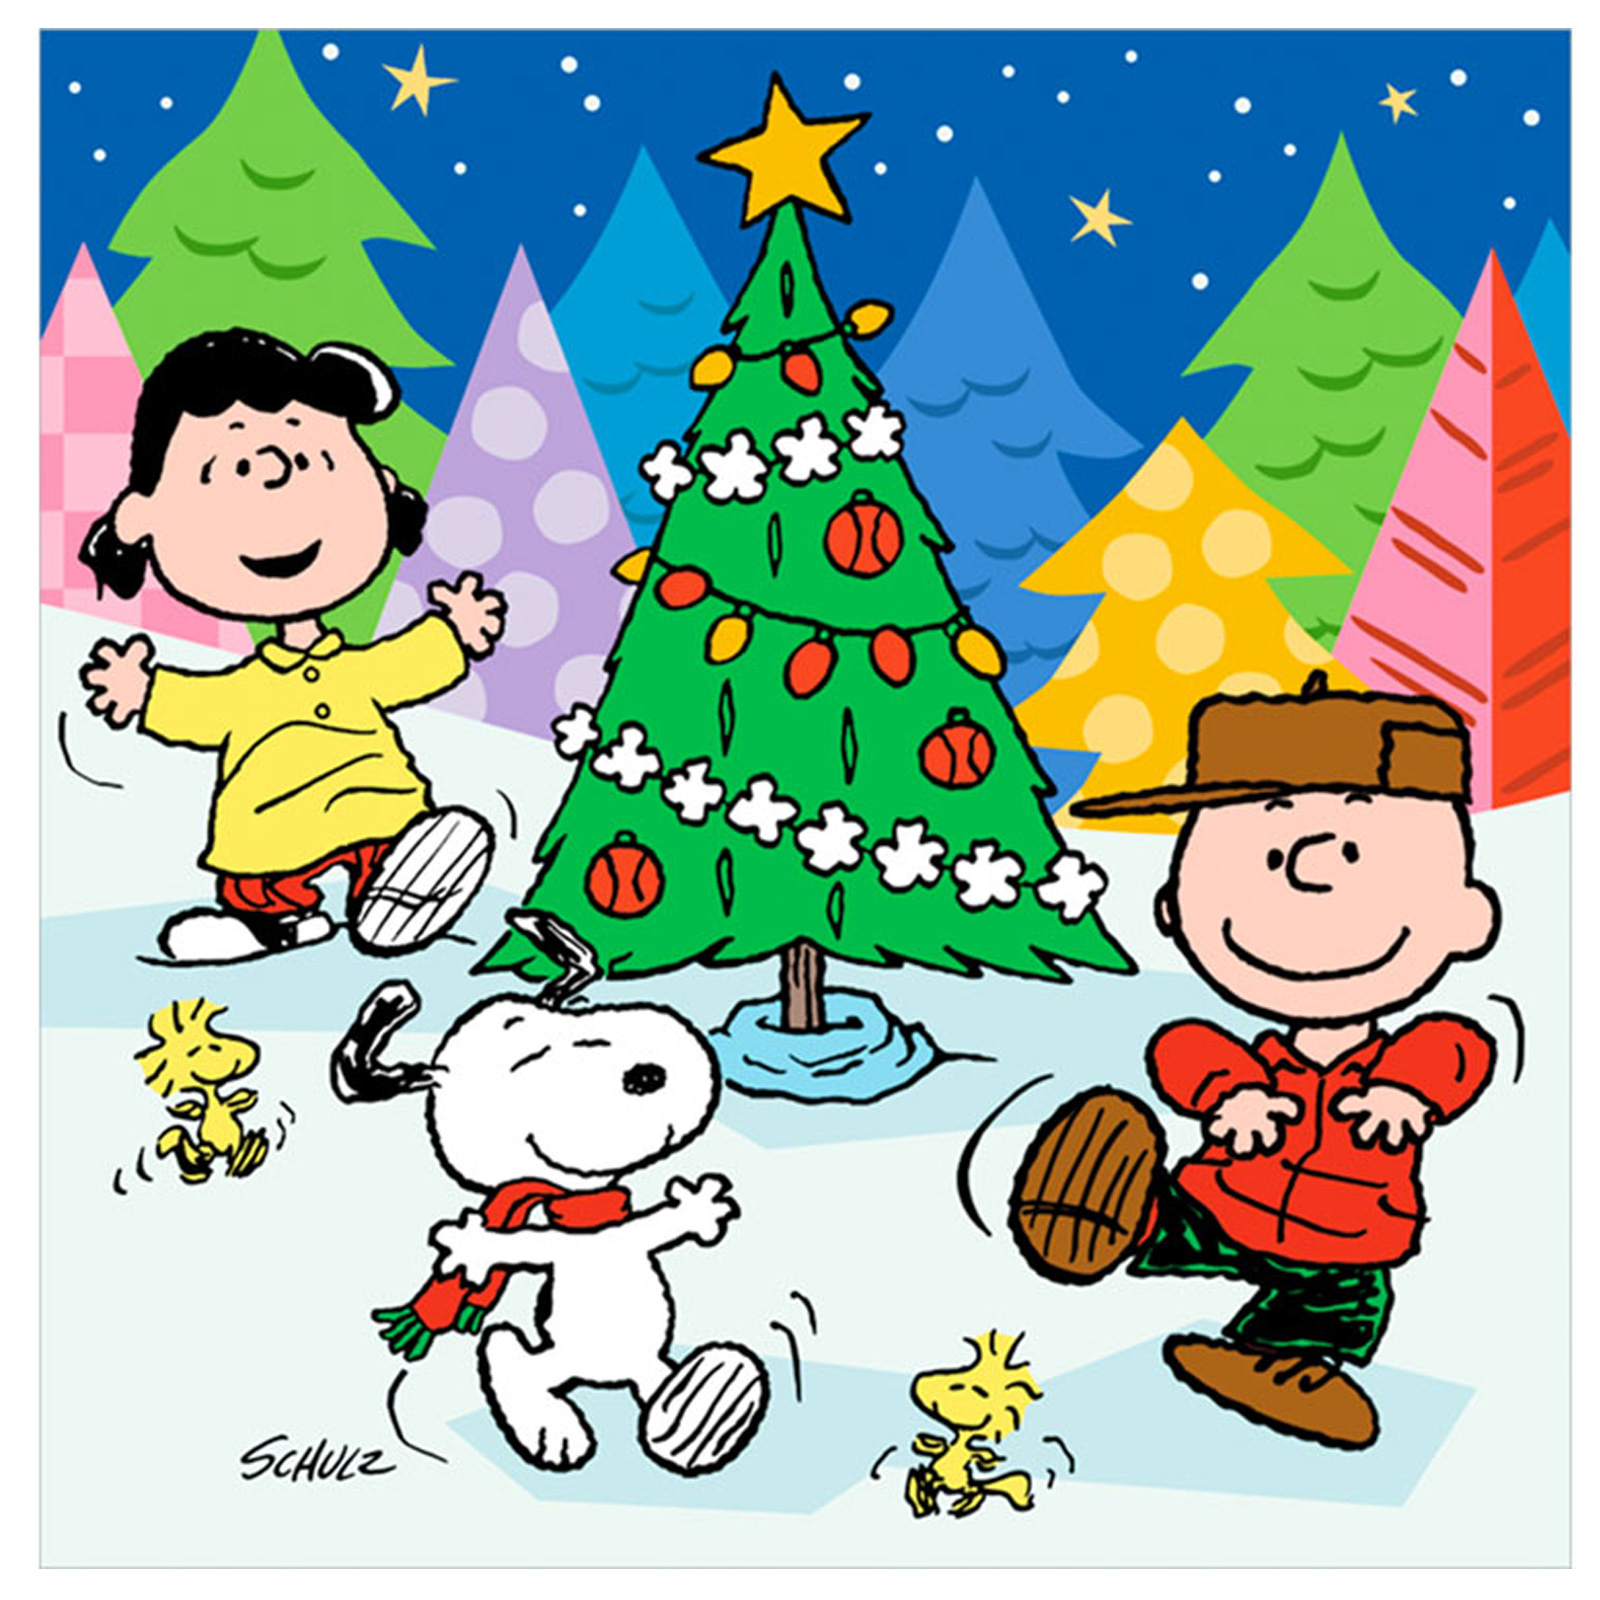 Caroling clipart peanuts christmas. My favorite things about